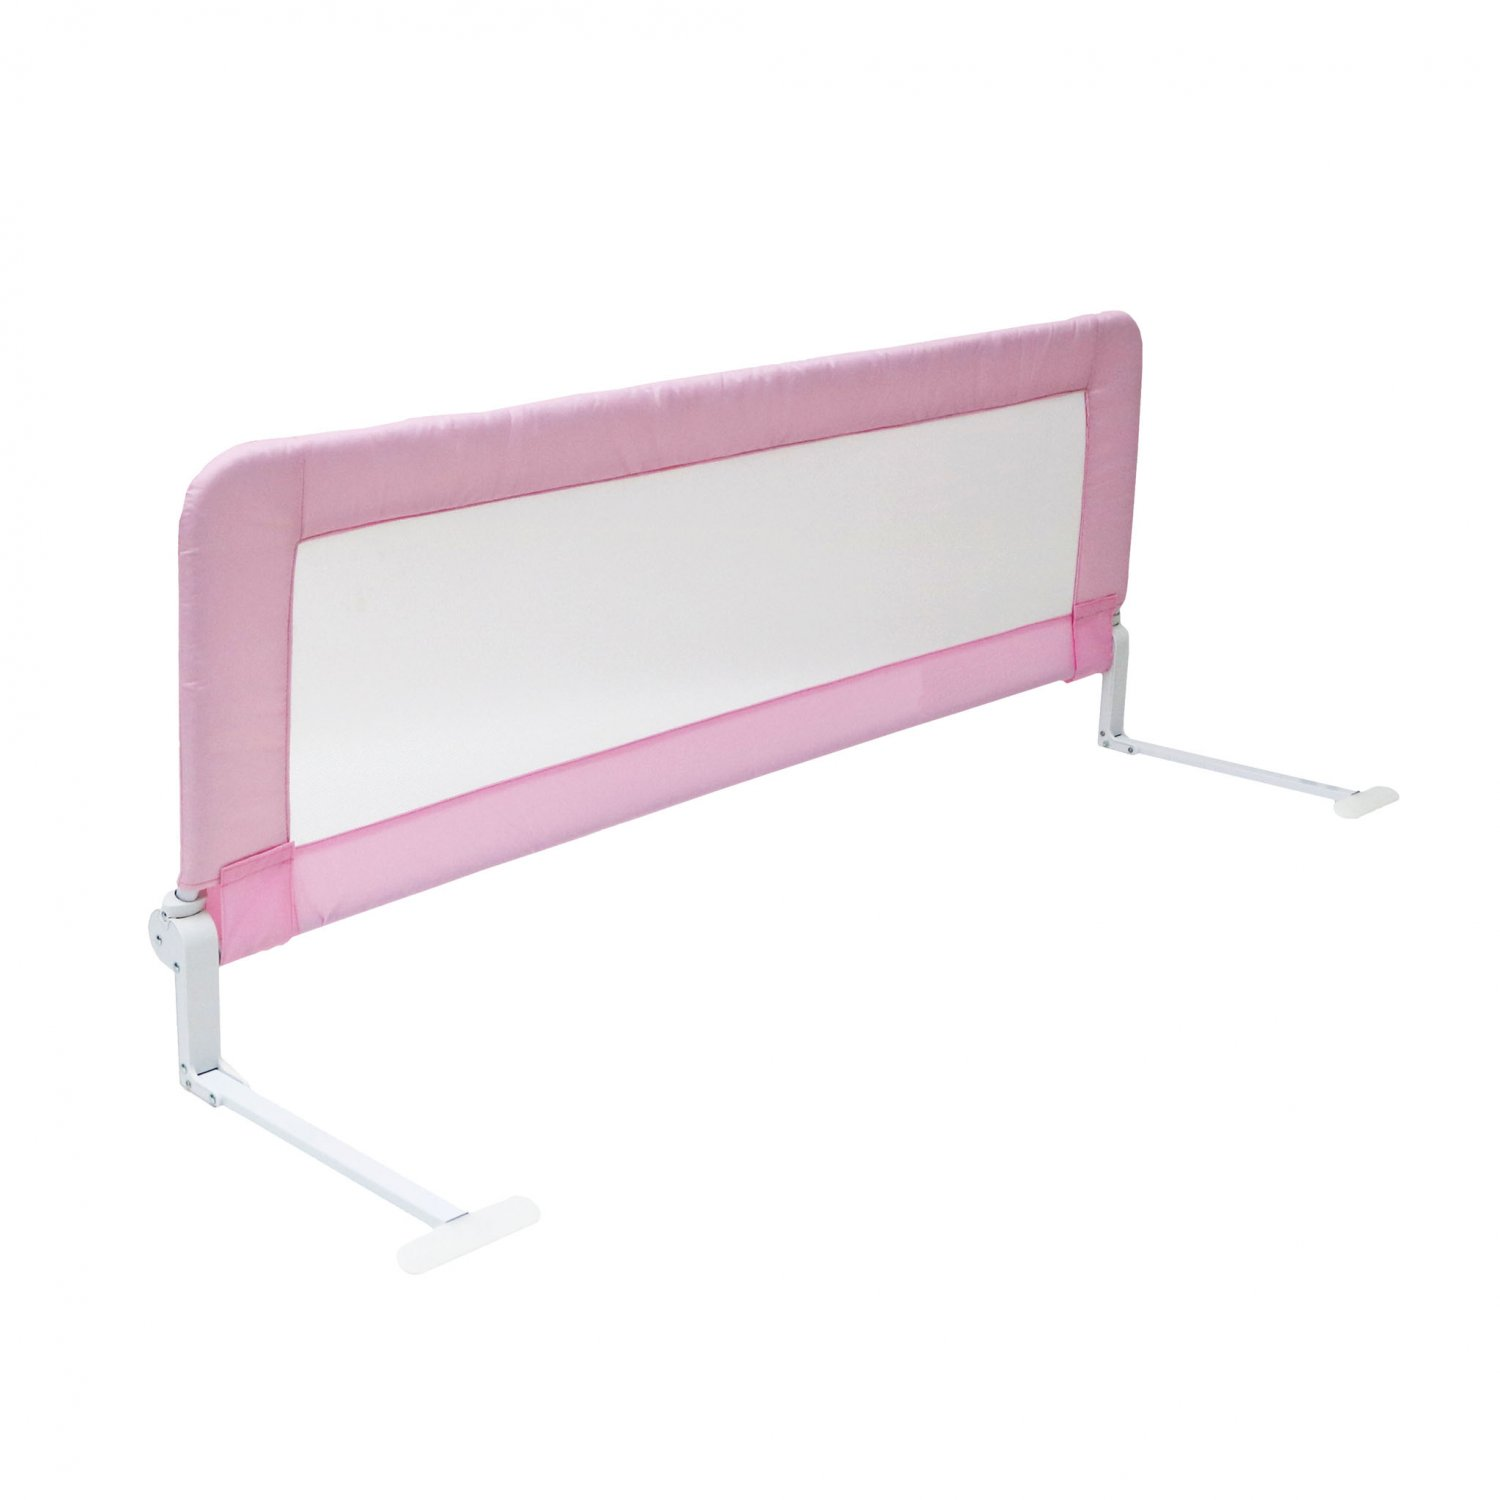 150cm Pink Baby Child Toddler Bed Rail Safety Protection